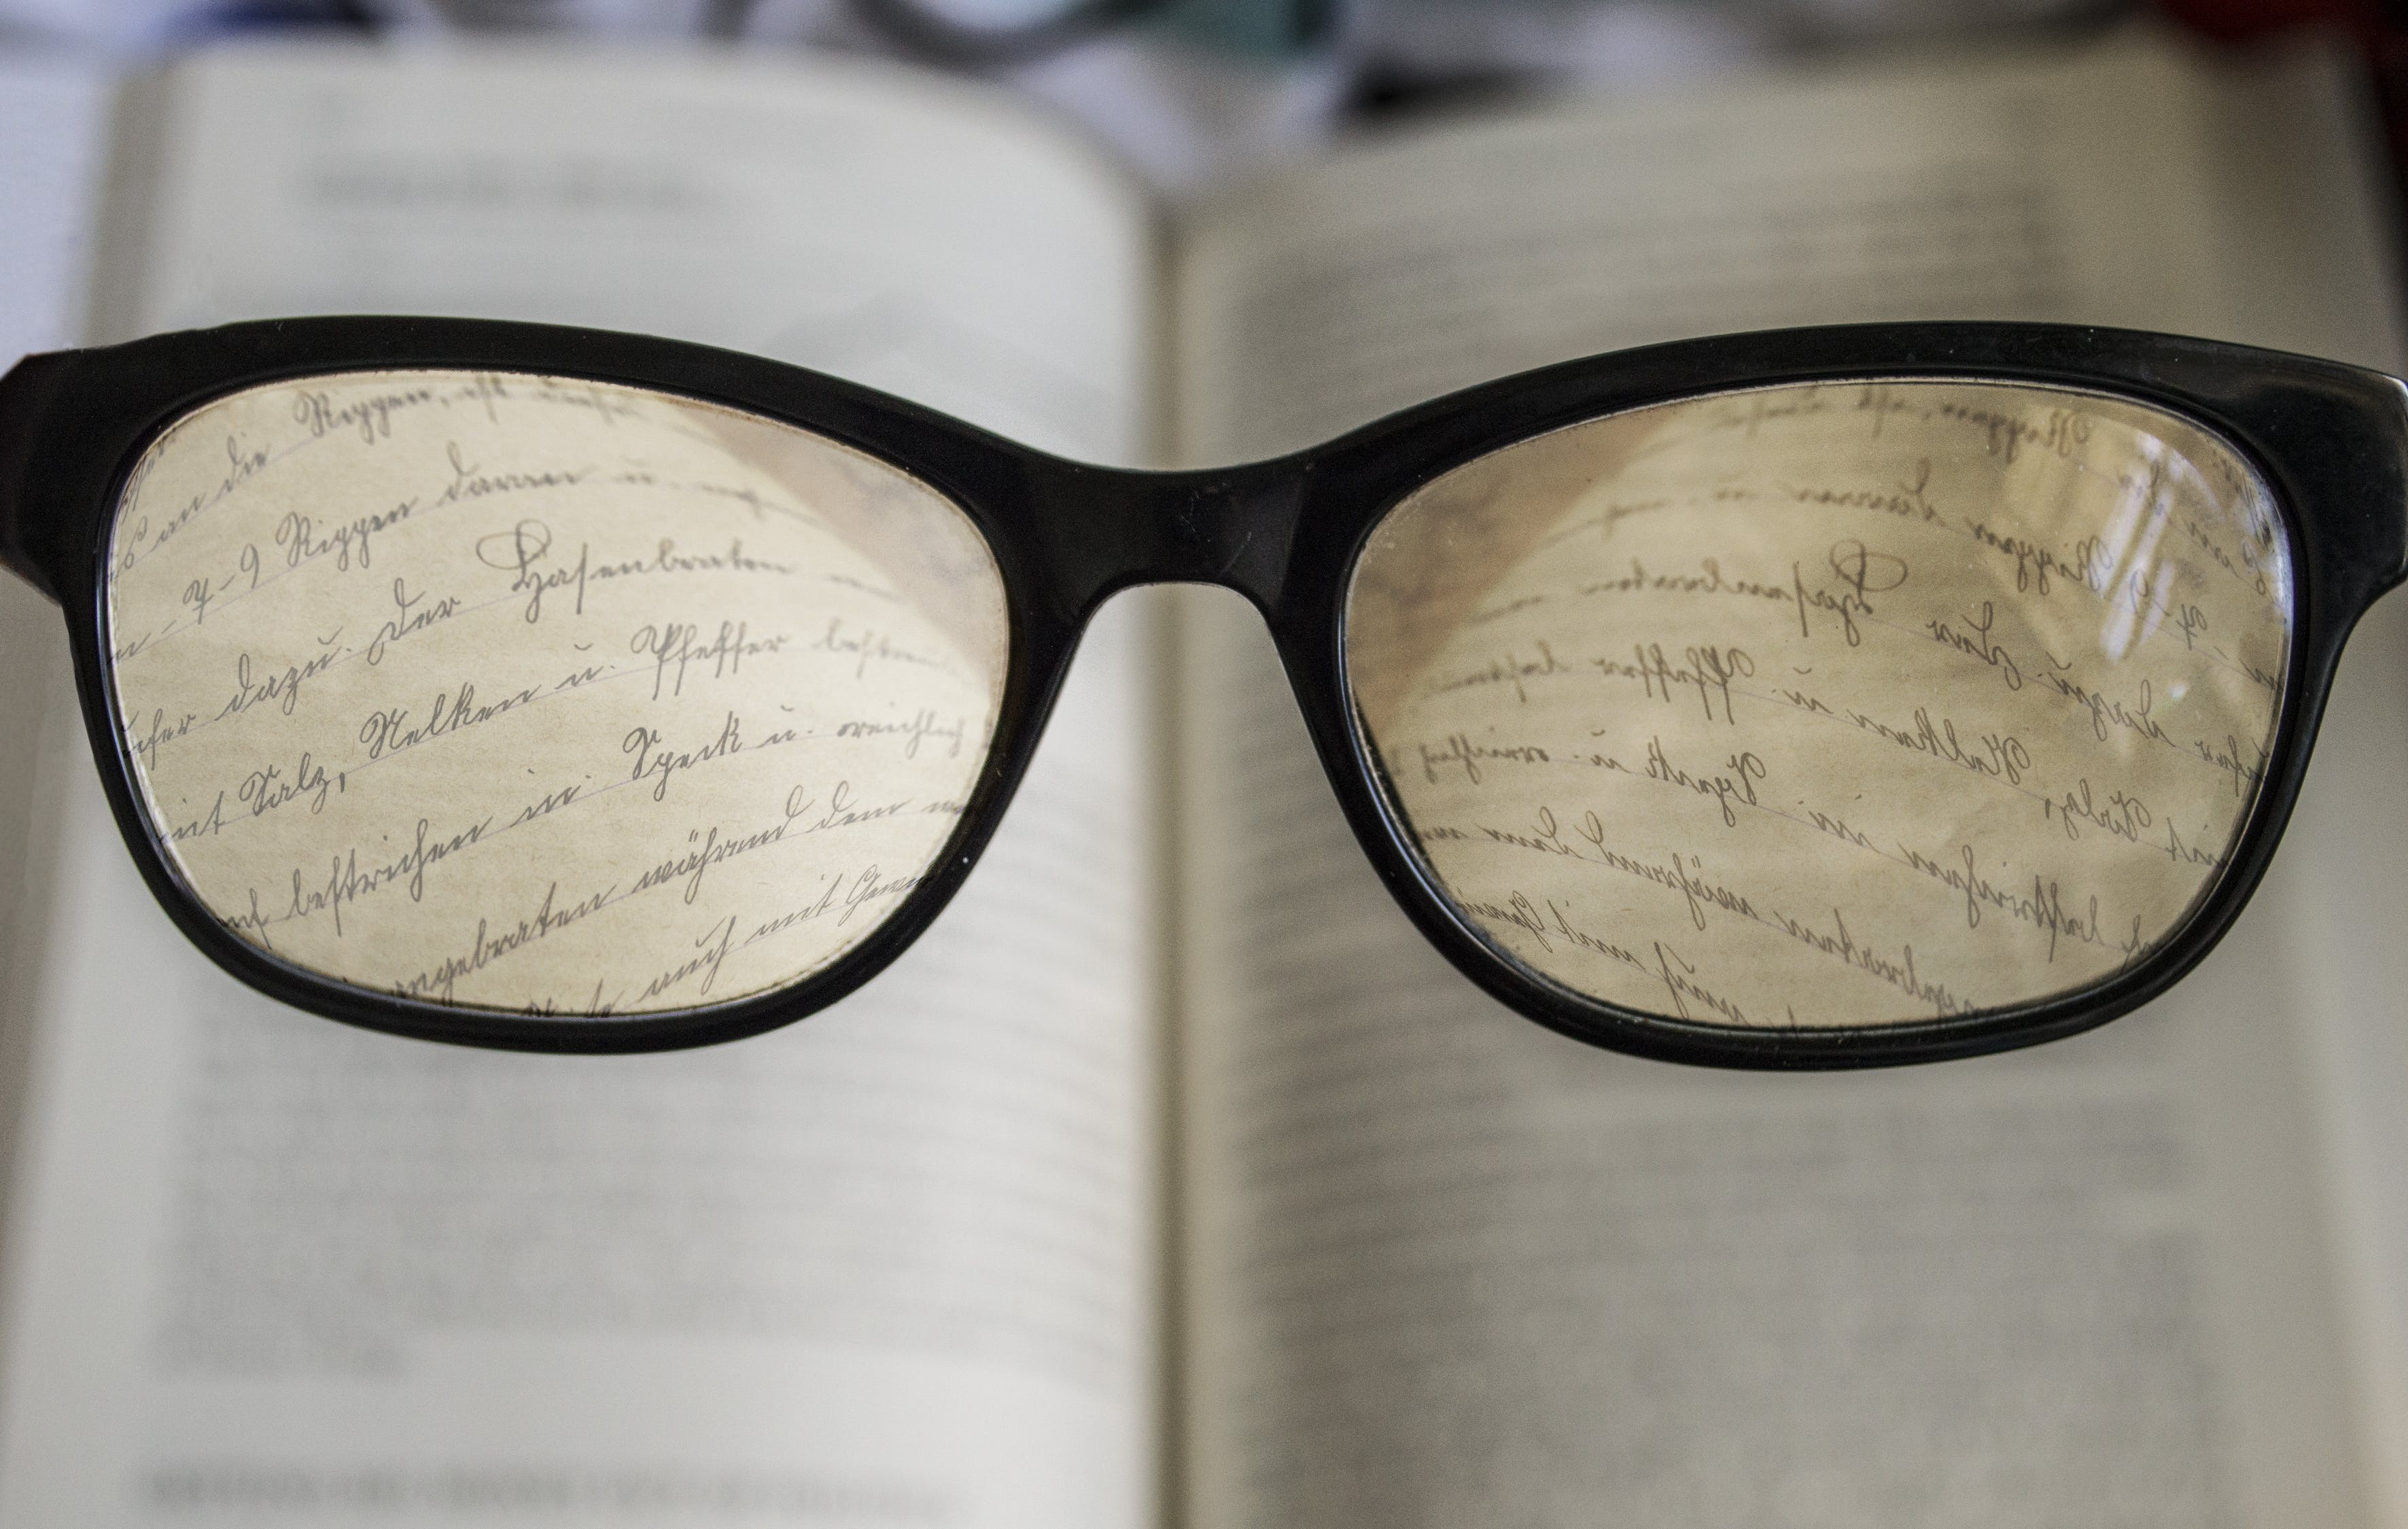 Enchroma Glasses has the ability to make you read a book clearly